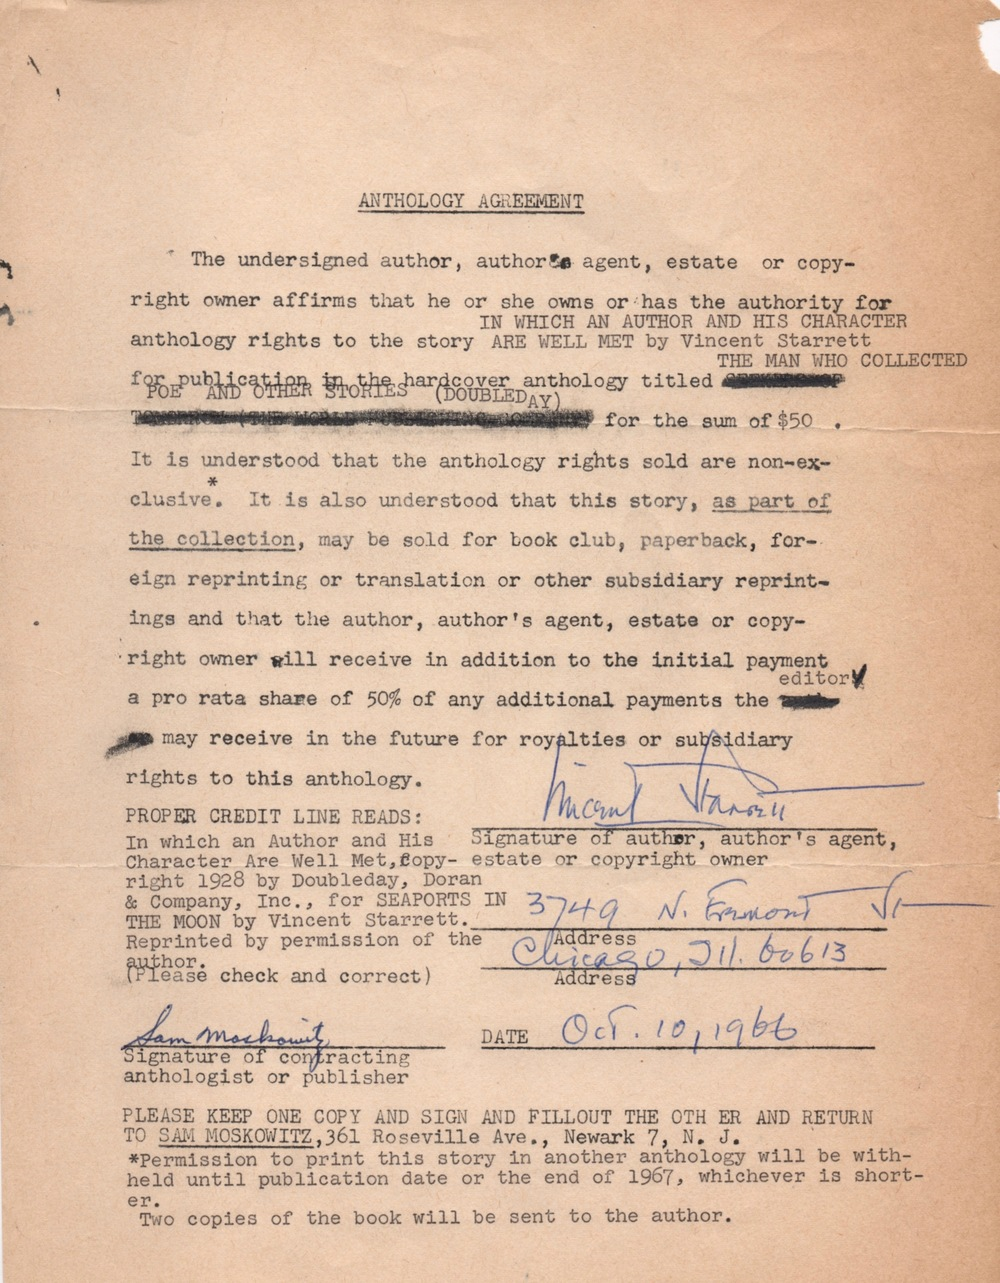 The contract between Moskowitz and Starrett.